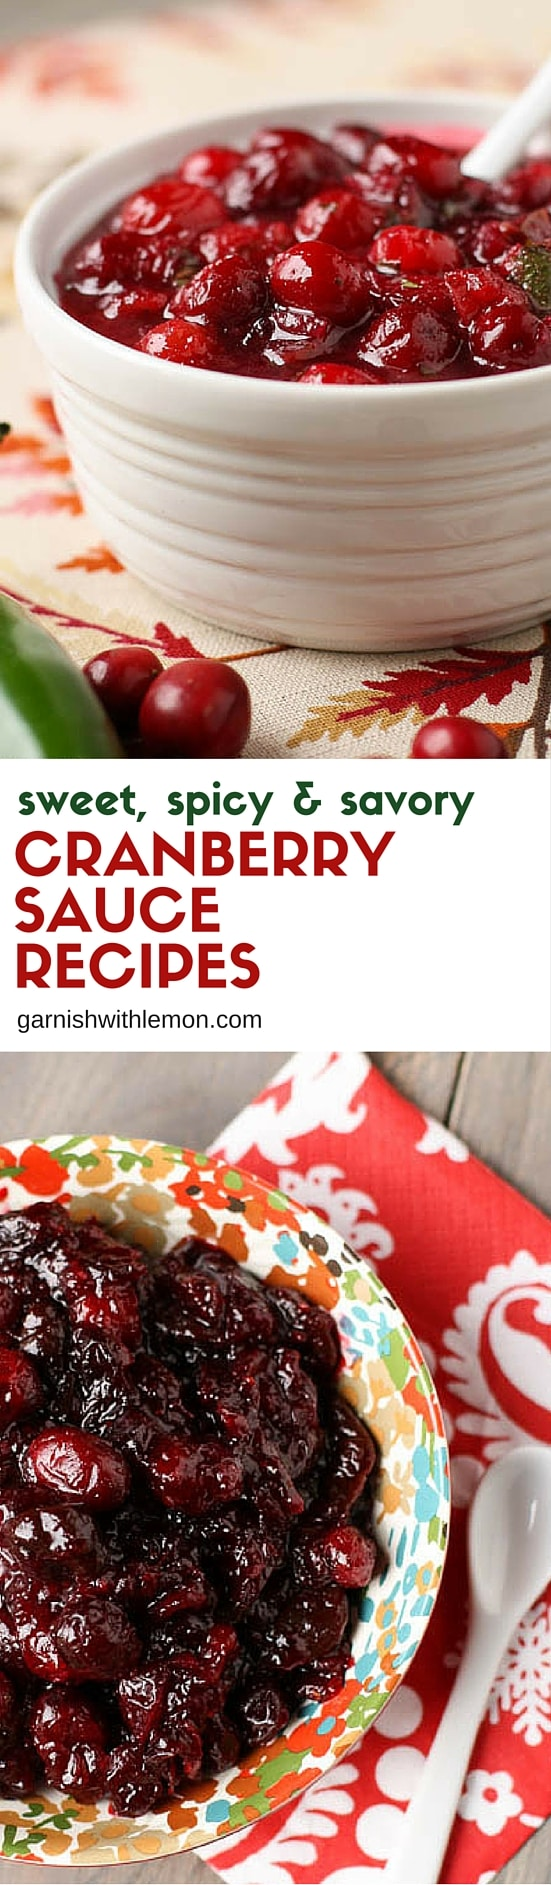 Can't decide between spicy or sweet? You don't have to with these two cranberry relish recipes. One is smooth but spicy and the other is savory but sweet.